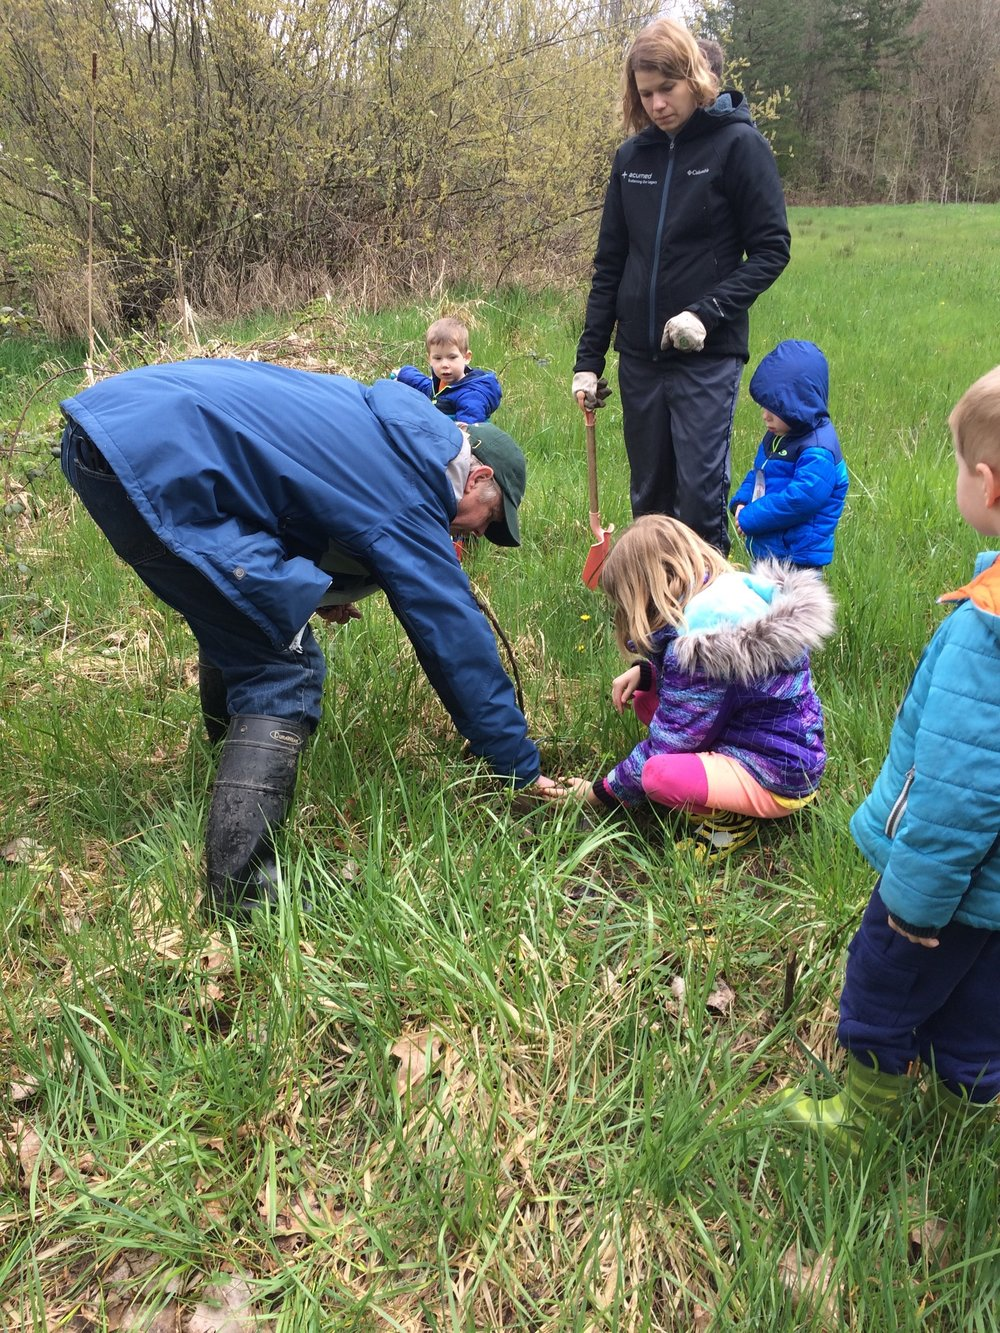 Julie Dausman and her children help ward off invasive reed canary grass by planting pussywillow branches.